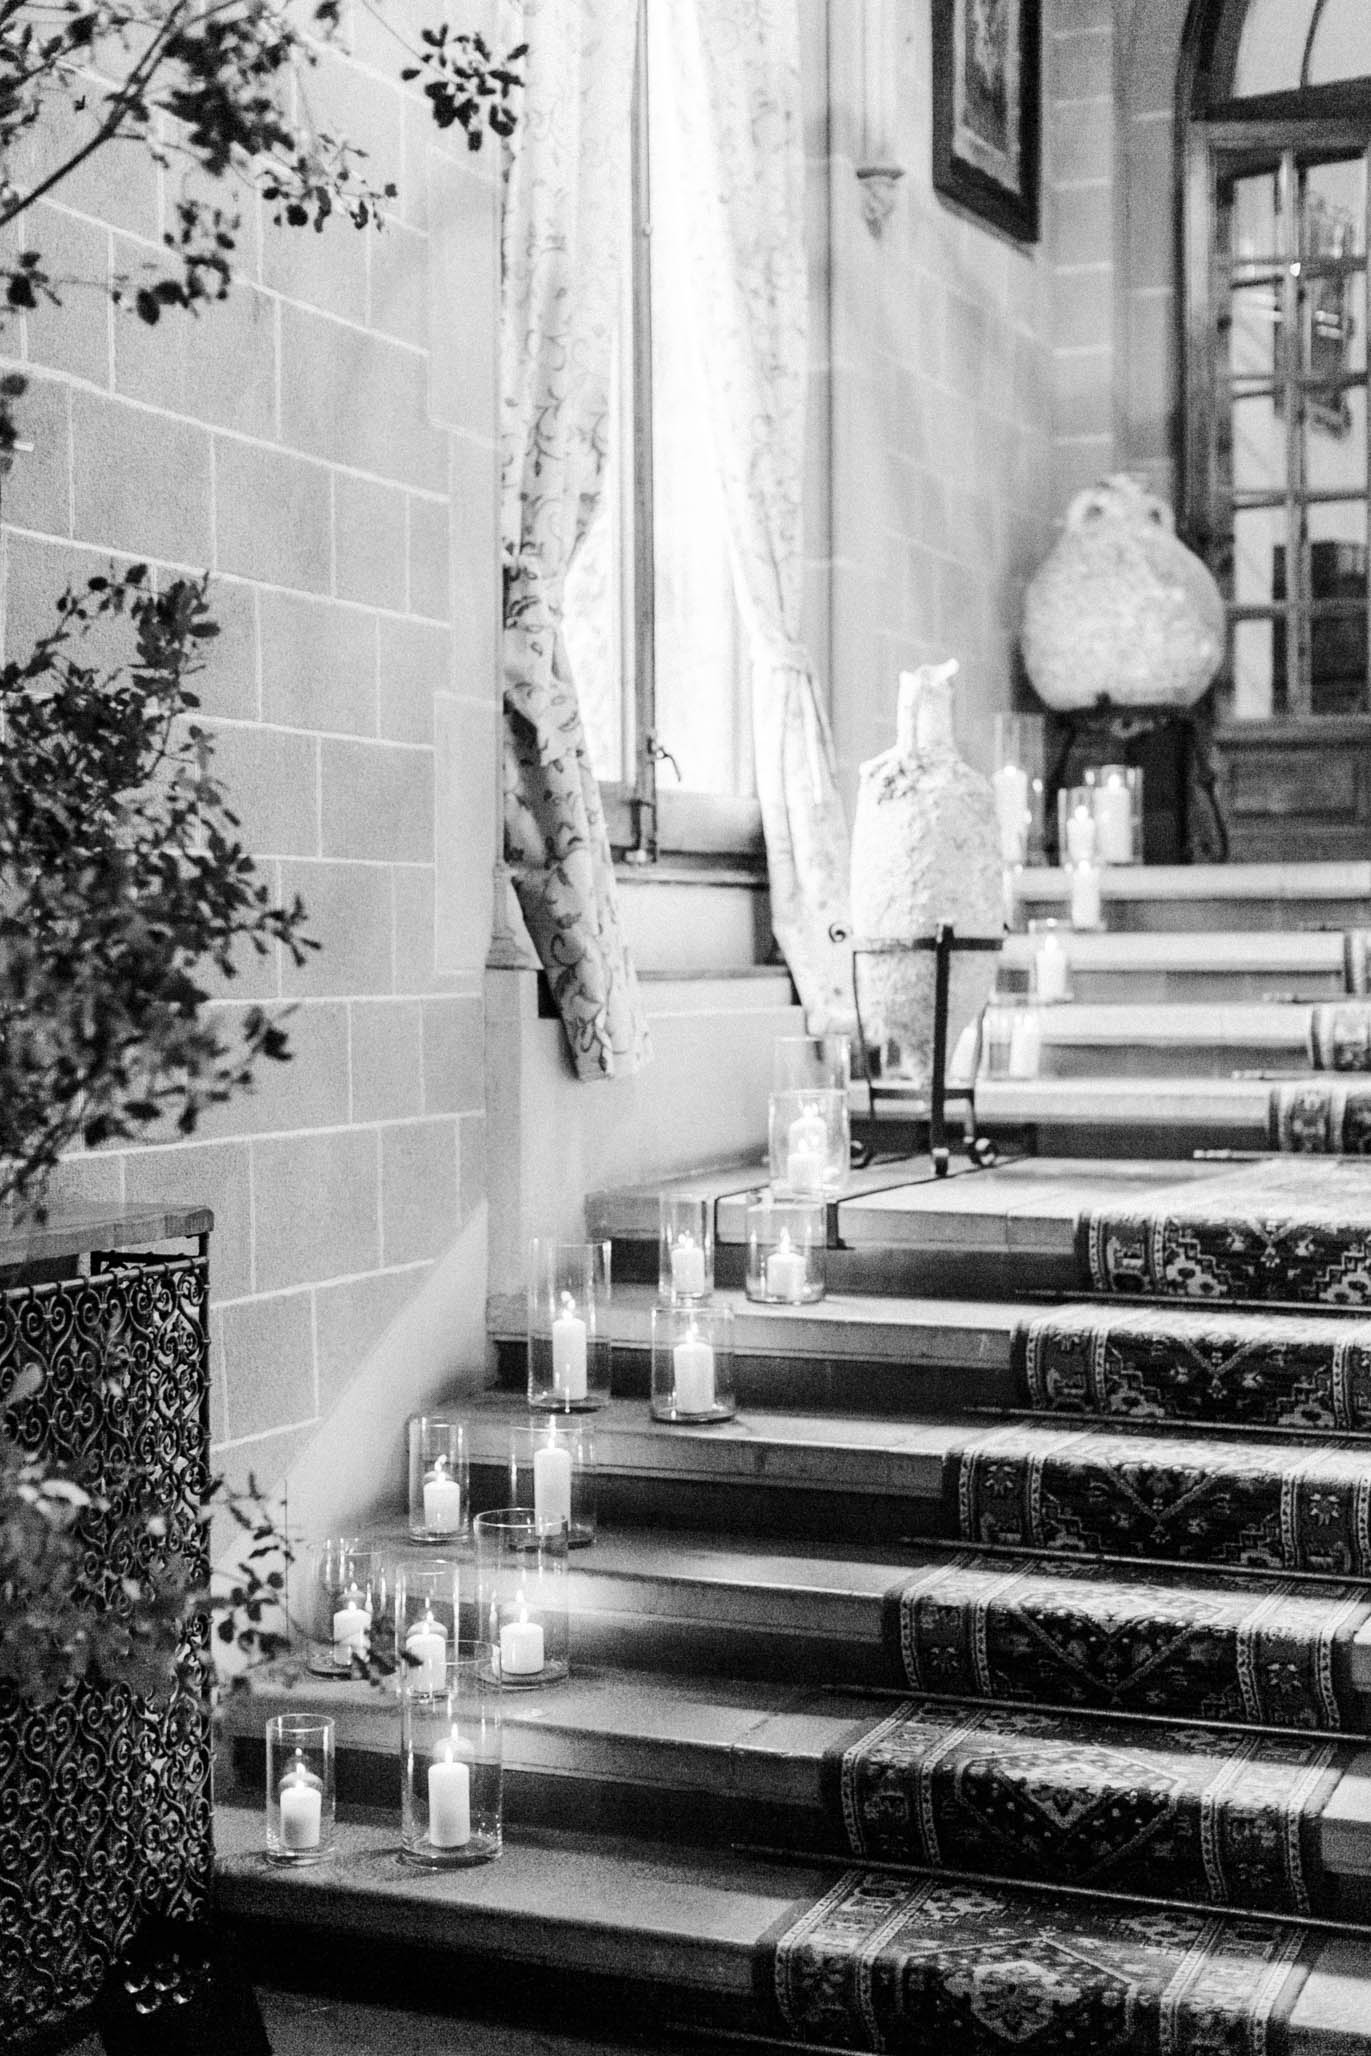 These were the entrance steps to the reception. Doesn't it look like it's straight out of a movie. The details are so genuine, so perfect, so romantic. I could really go on.